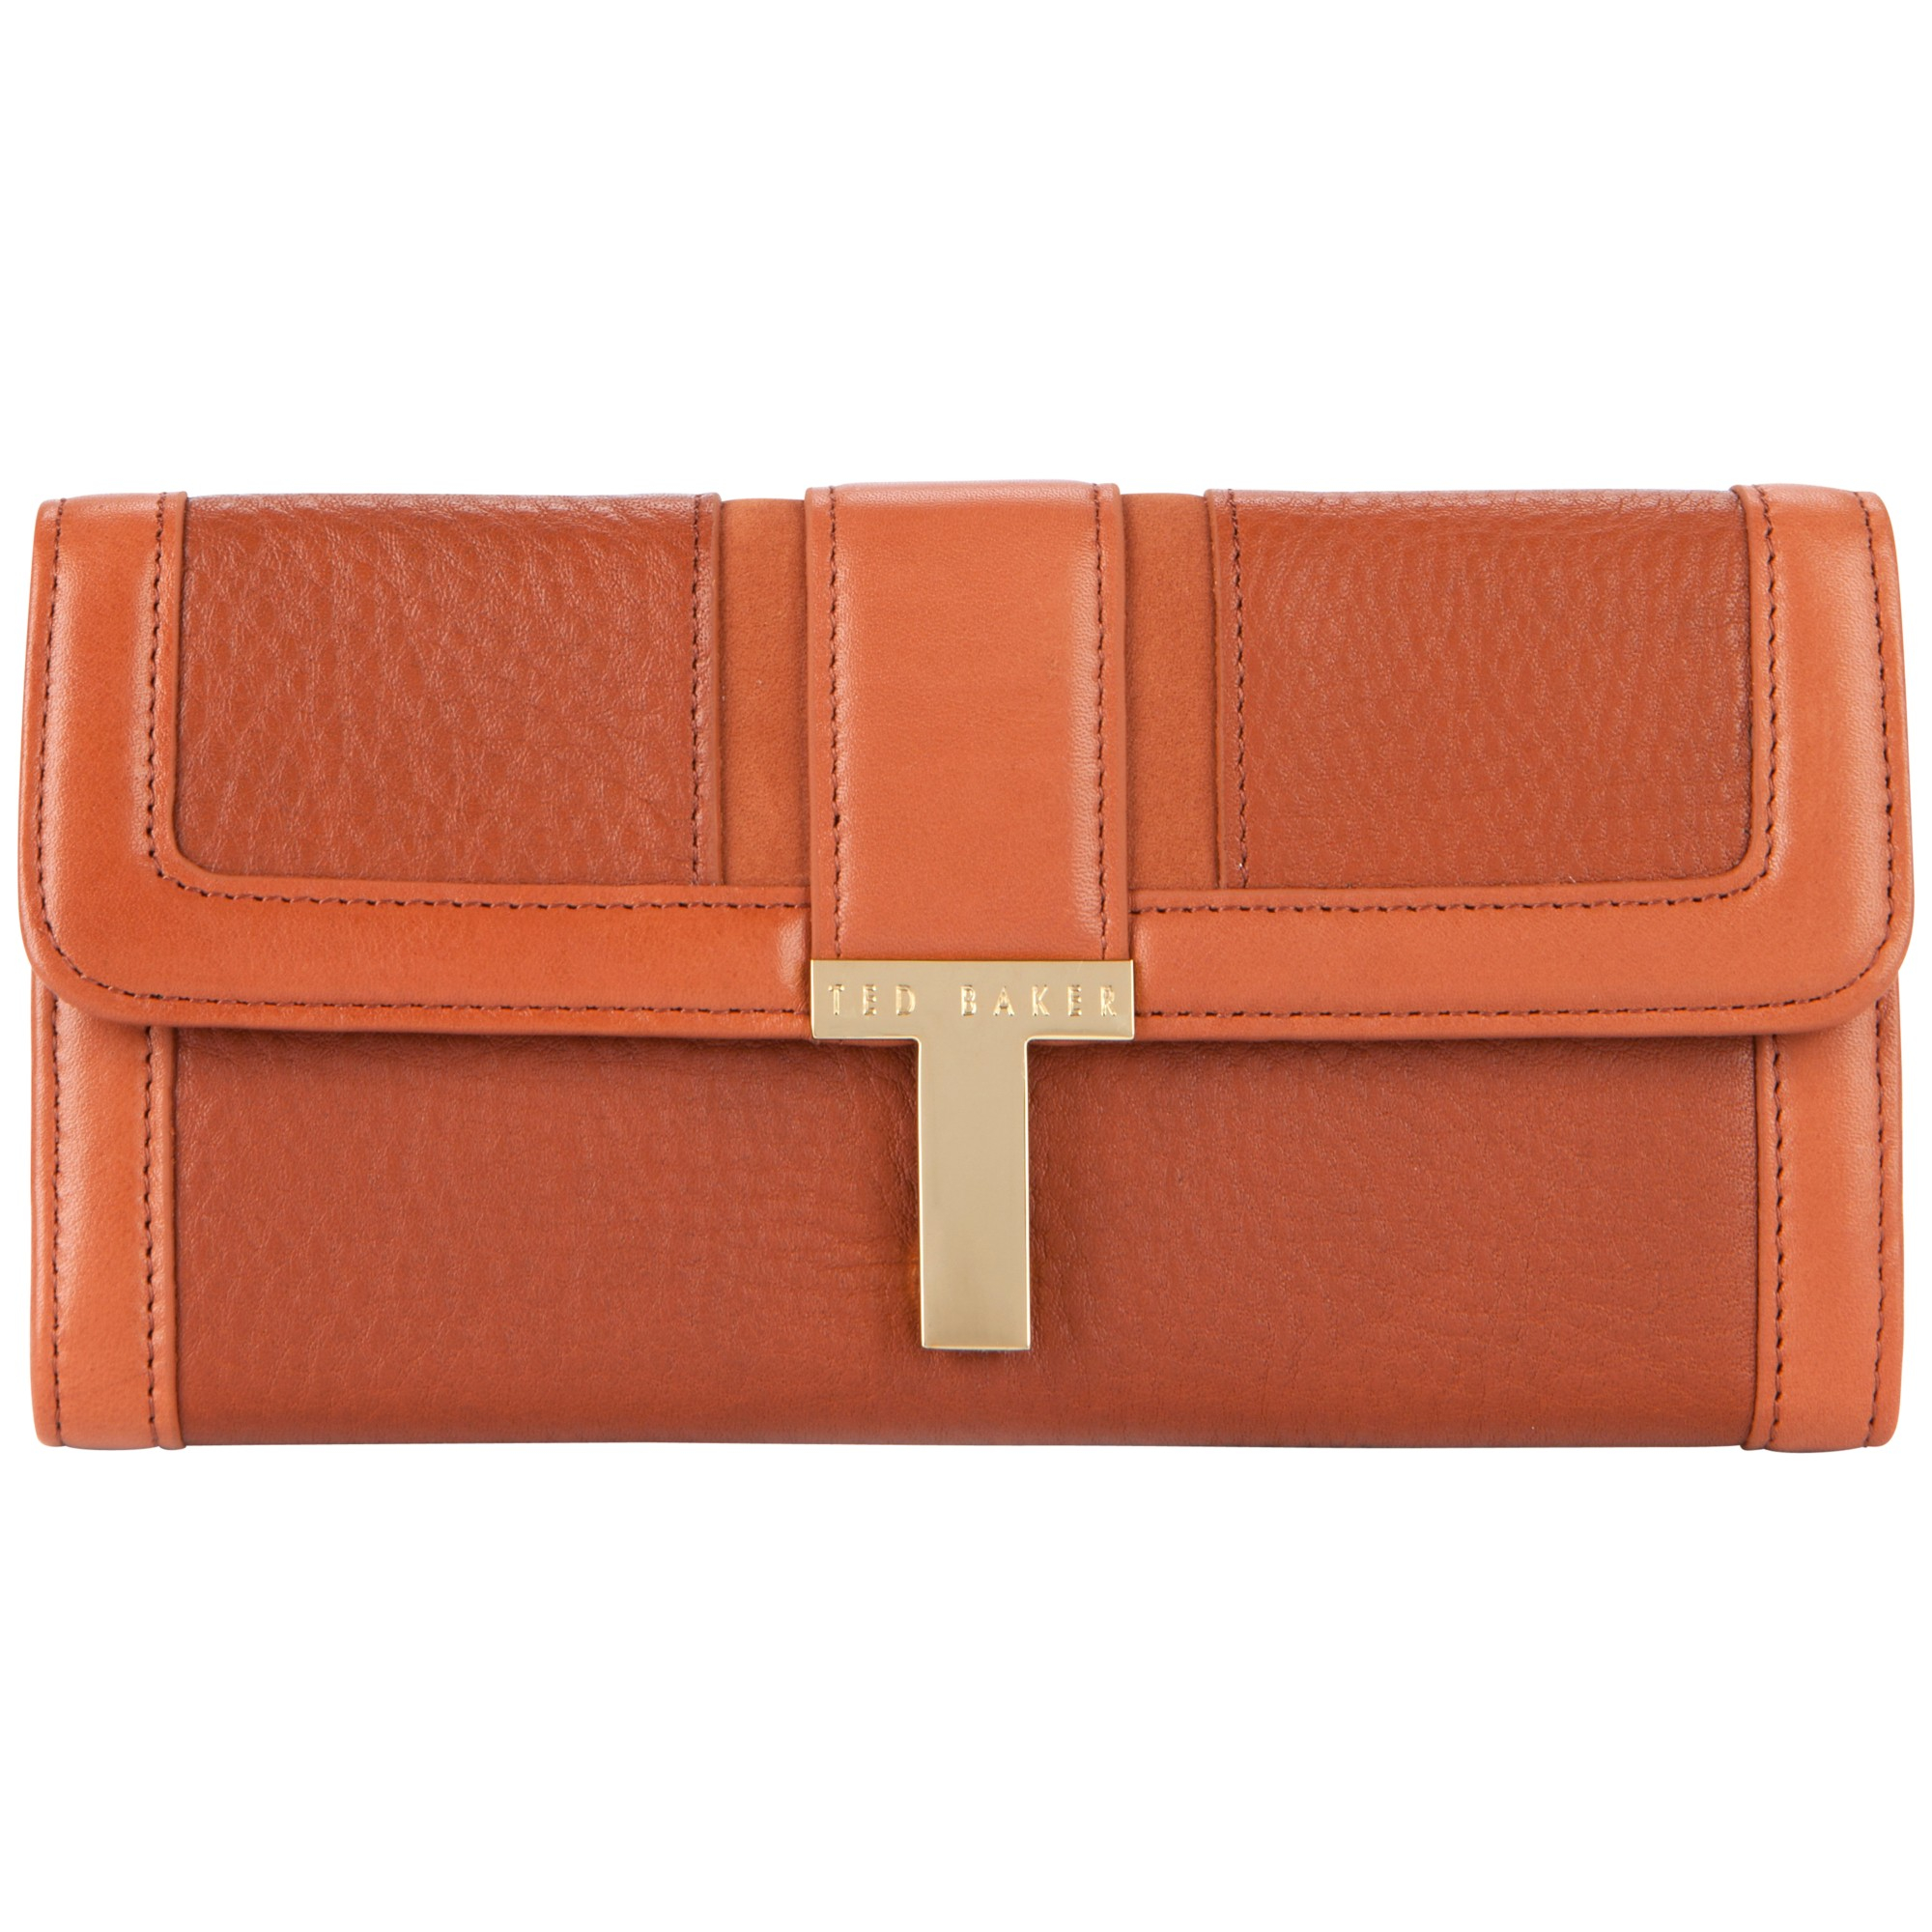 Ted baker Aspines T Keeper Purse in Orange (Black) | Lyst